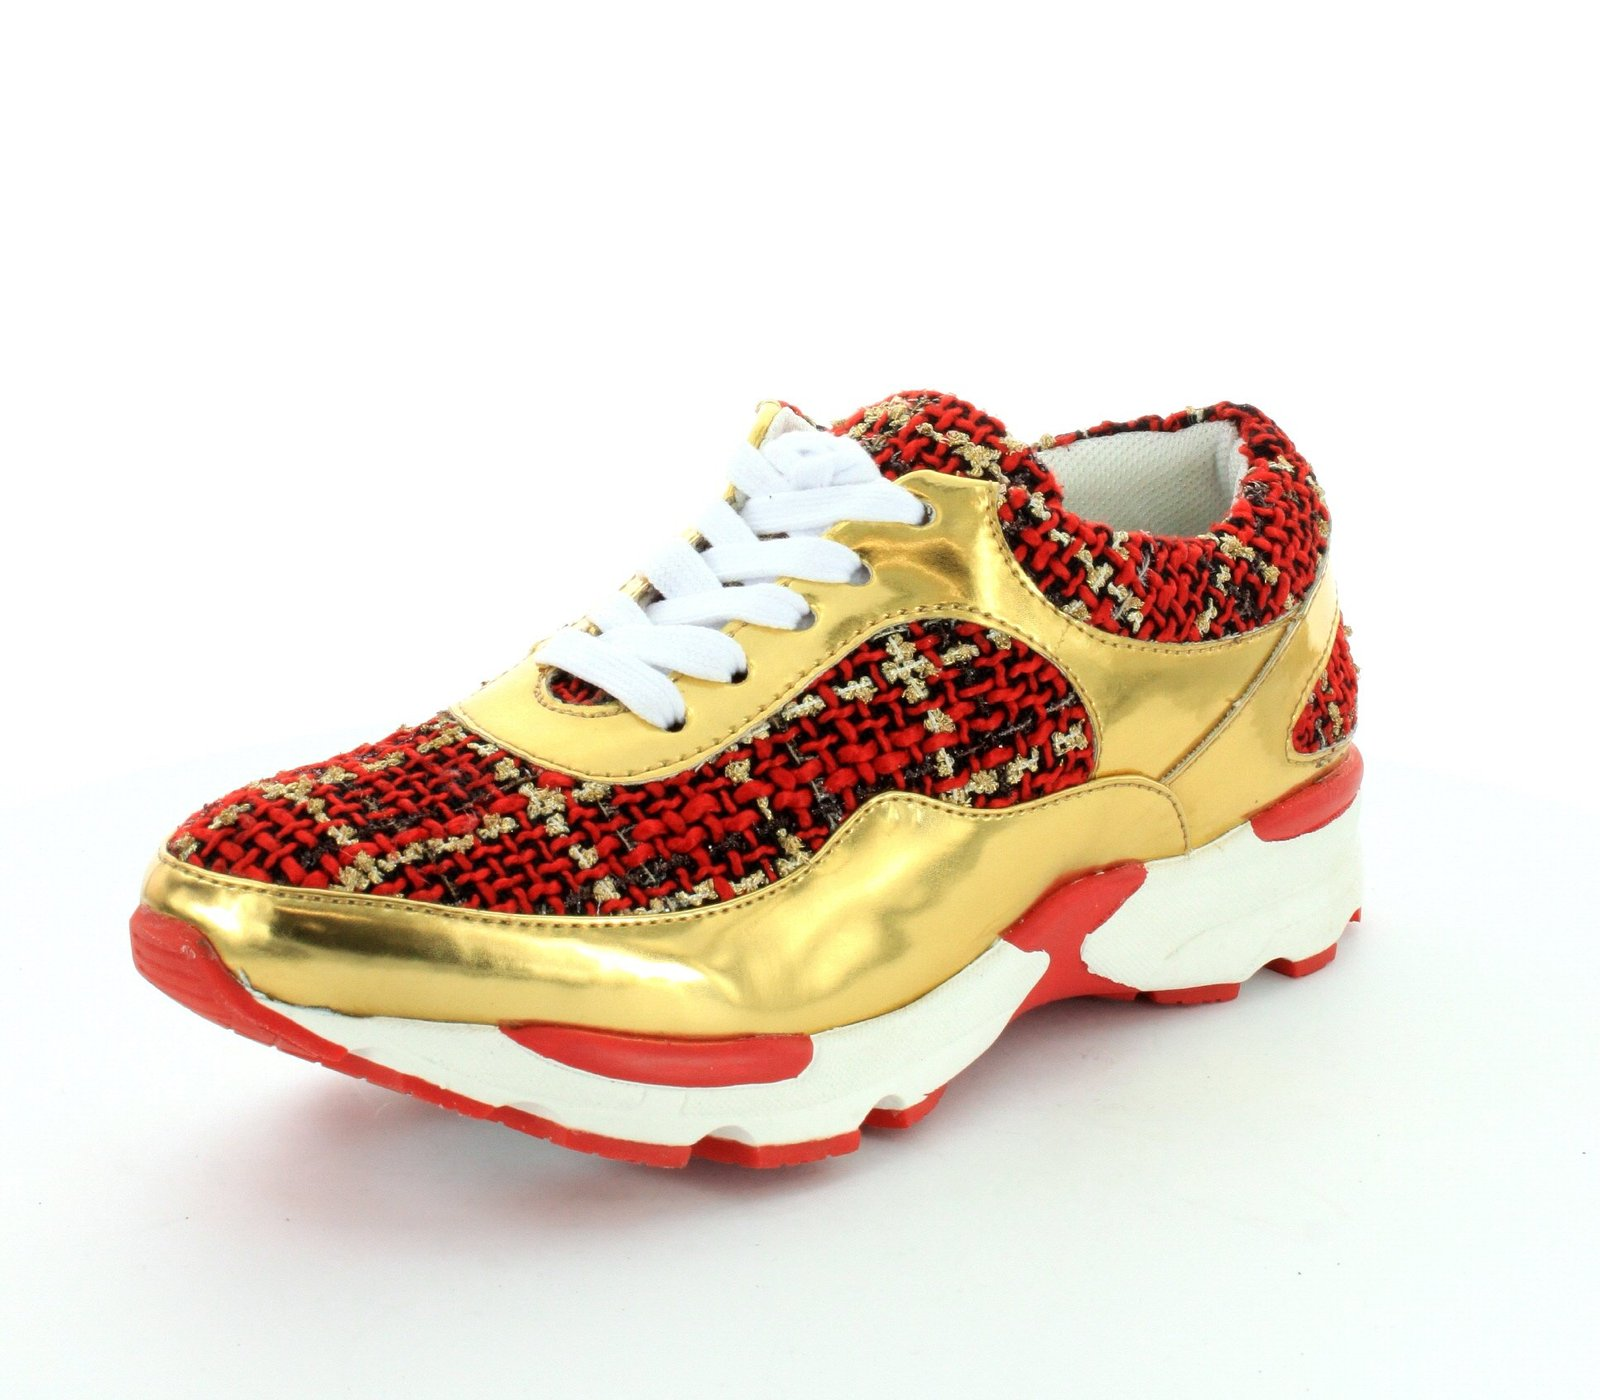 Jeffrey Campbell Womens Run Walk Gold Red Sneaker - 8 M